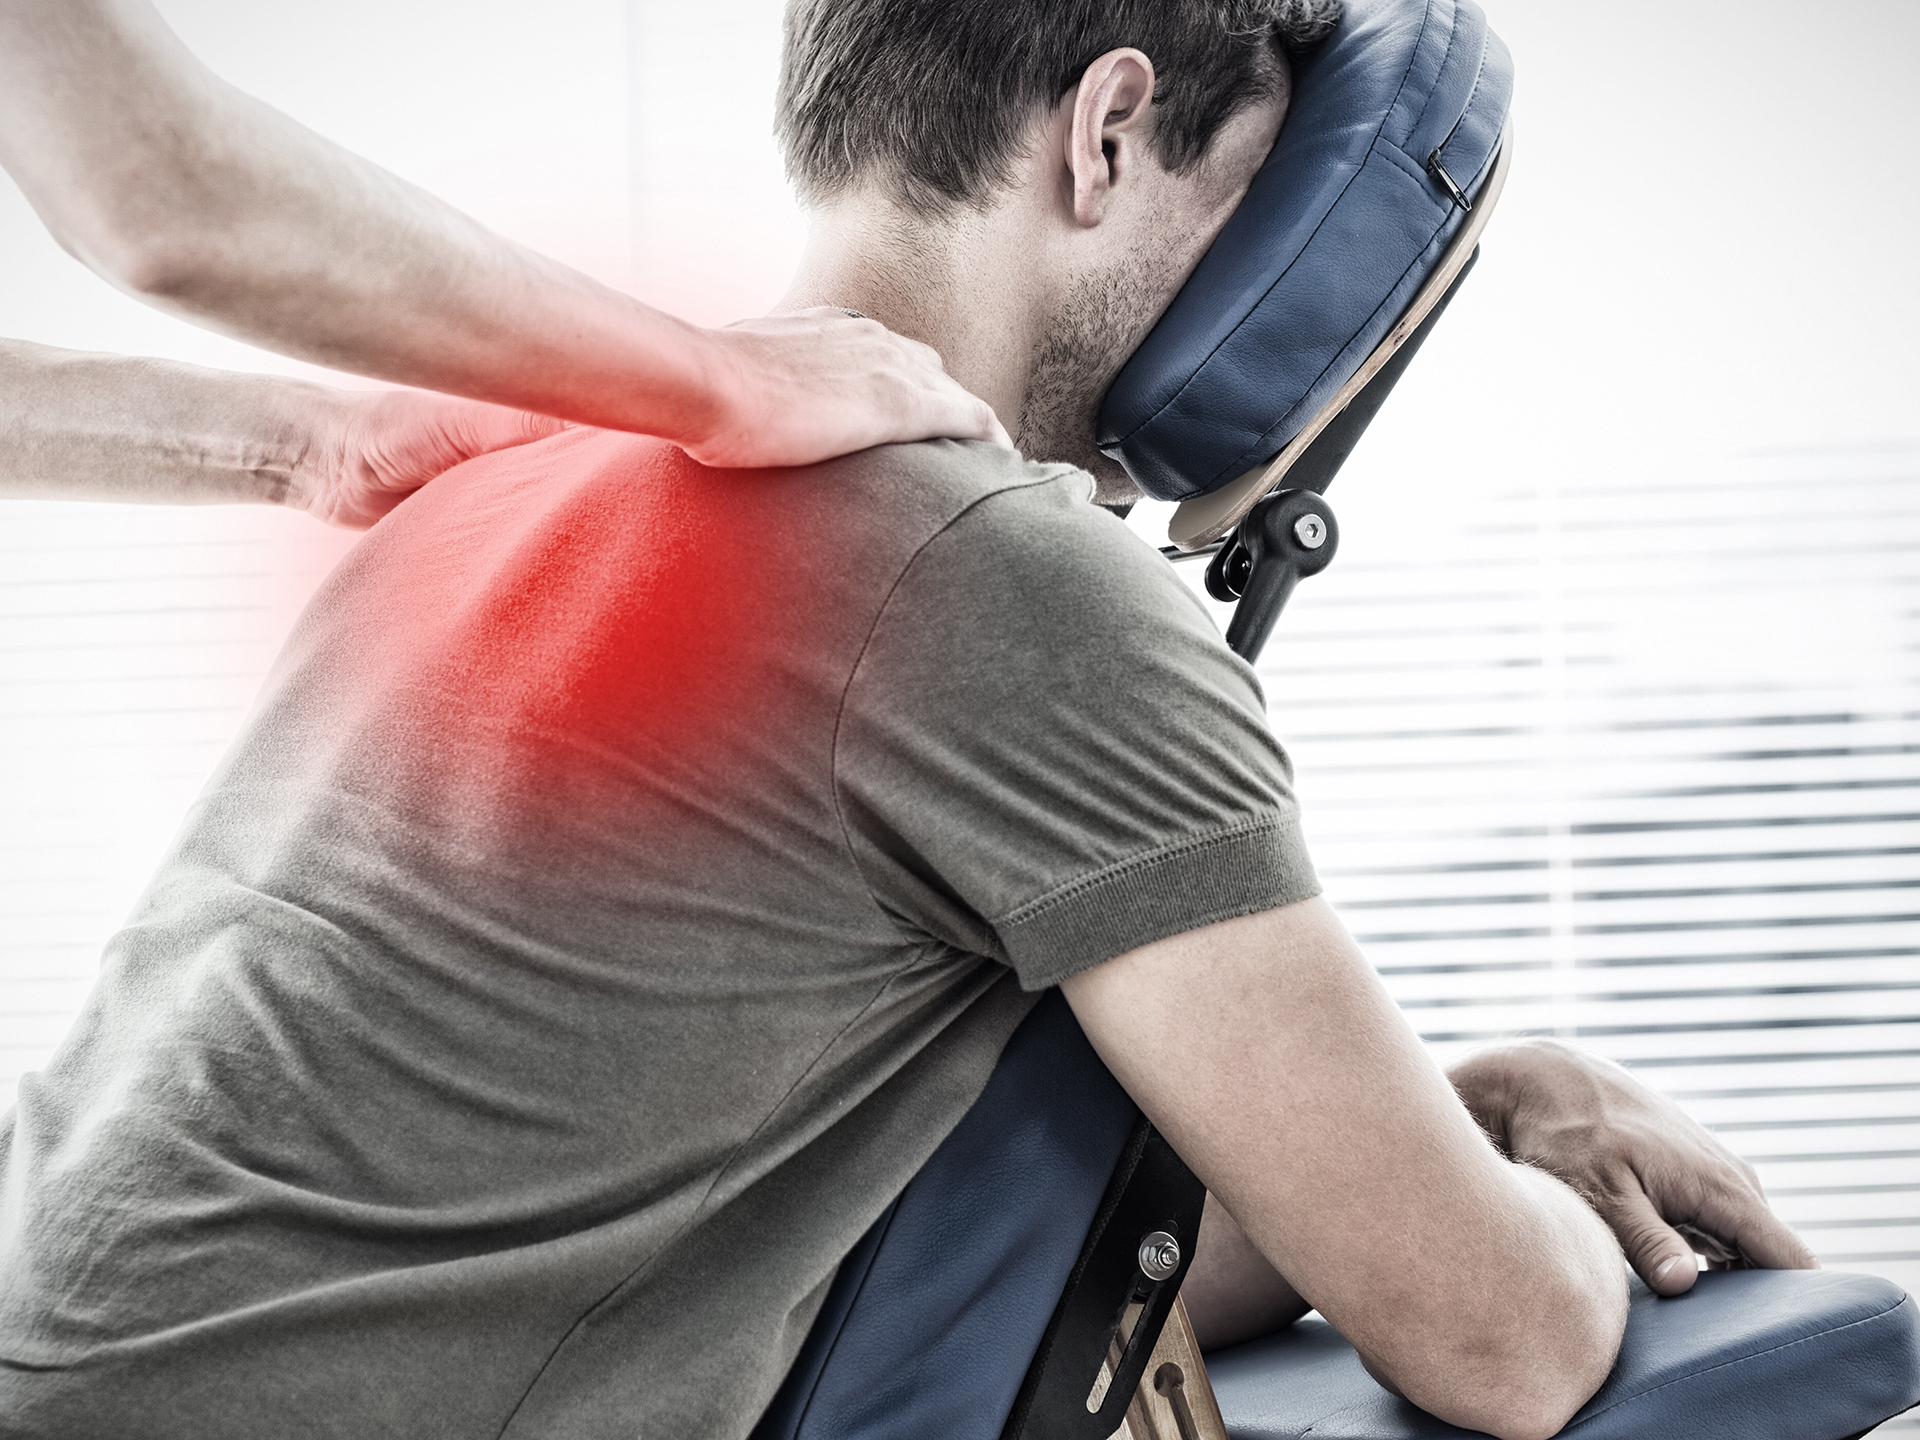 Composite image of physiotherapist giving shoulder massage to